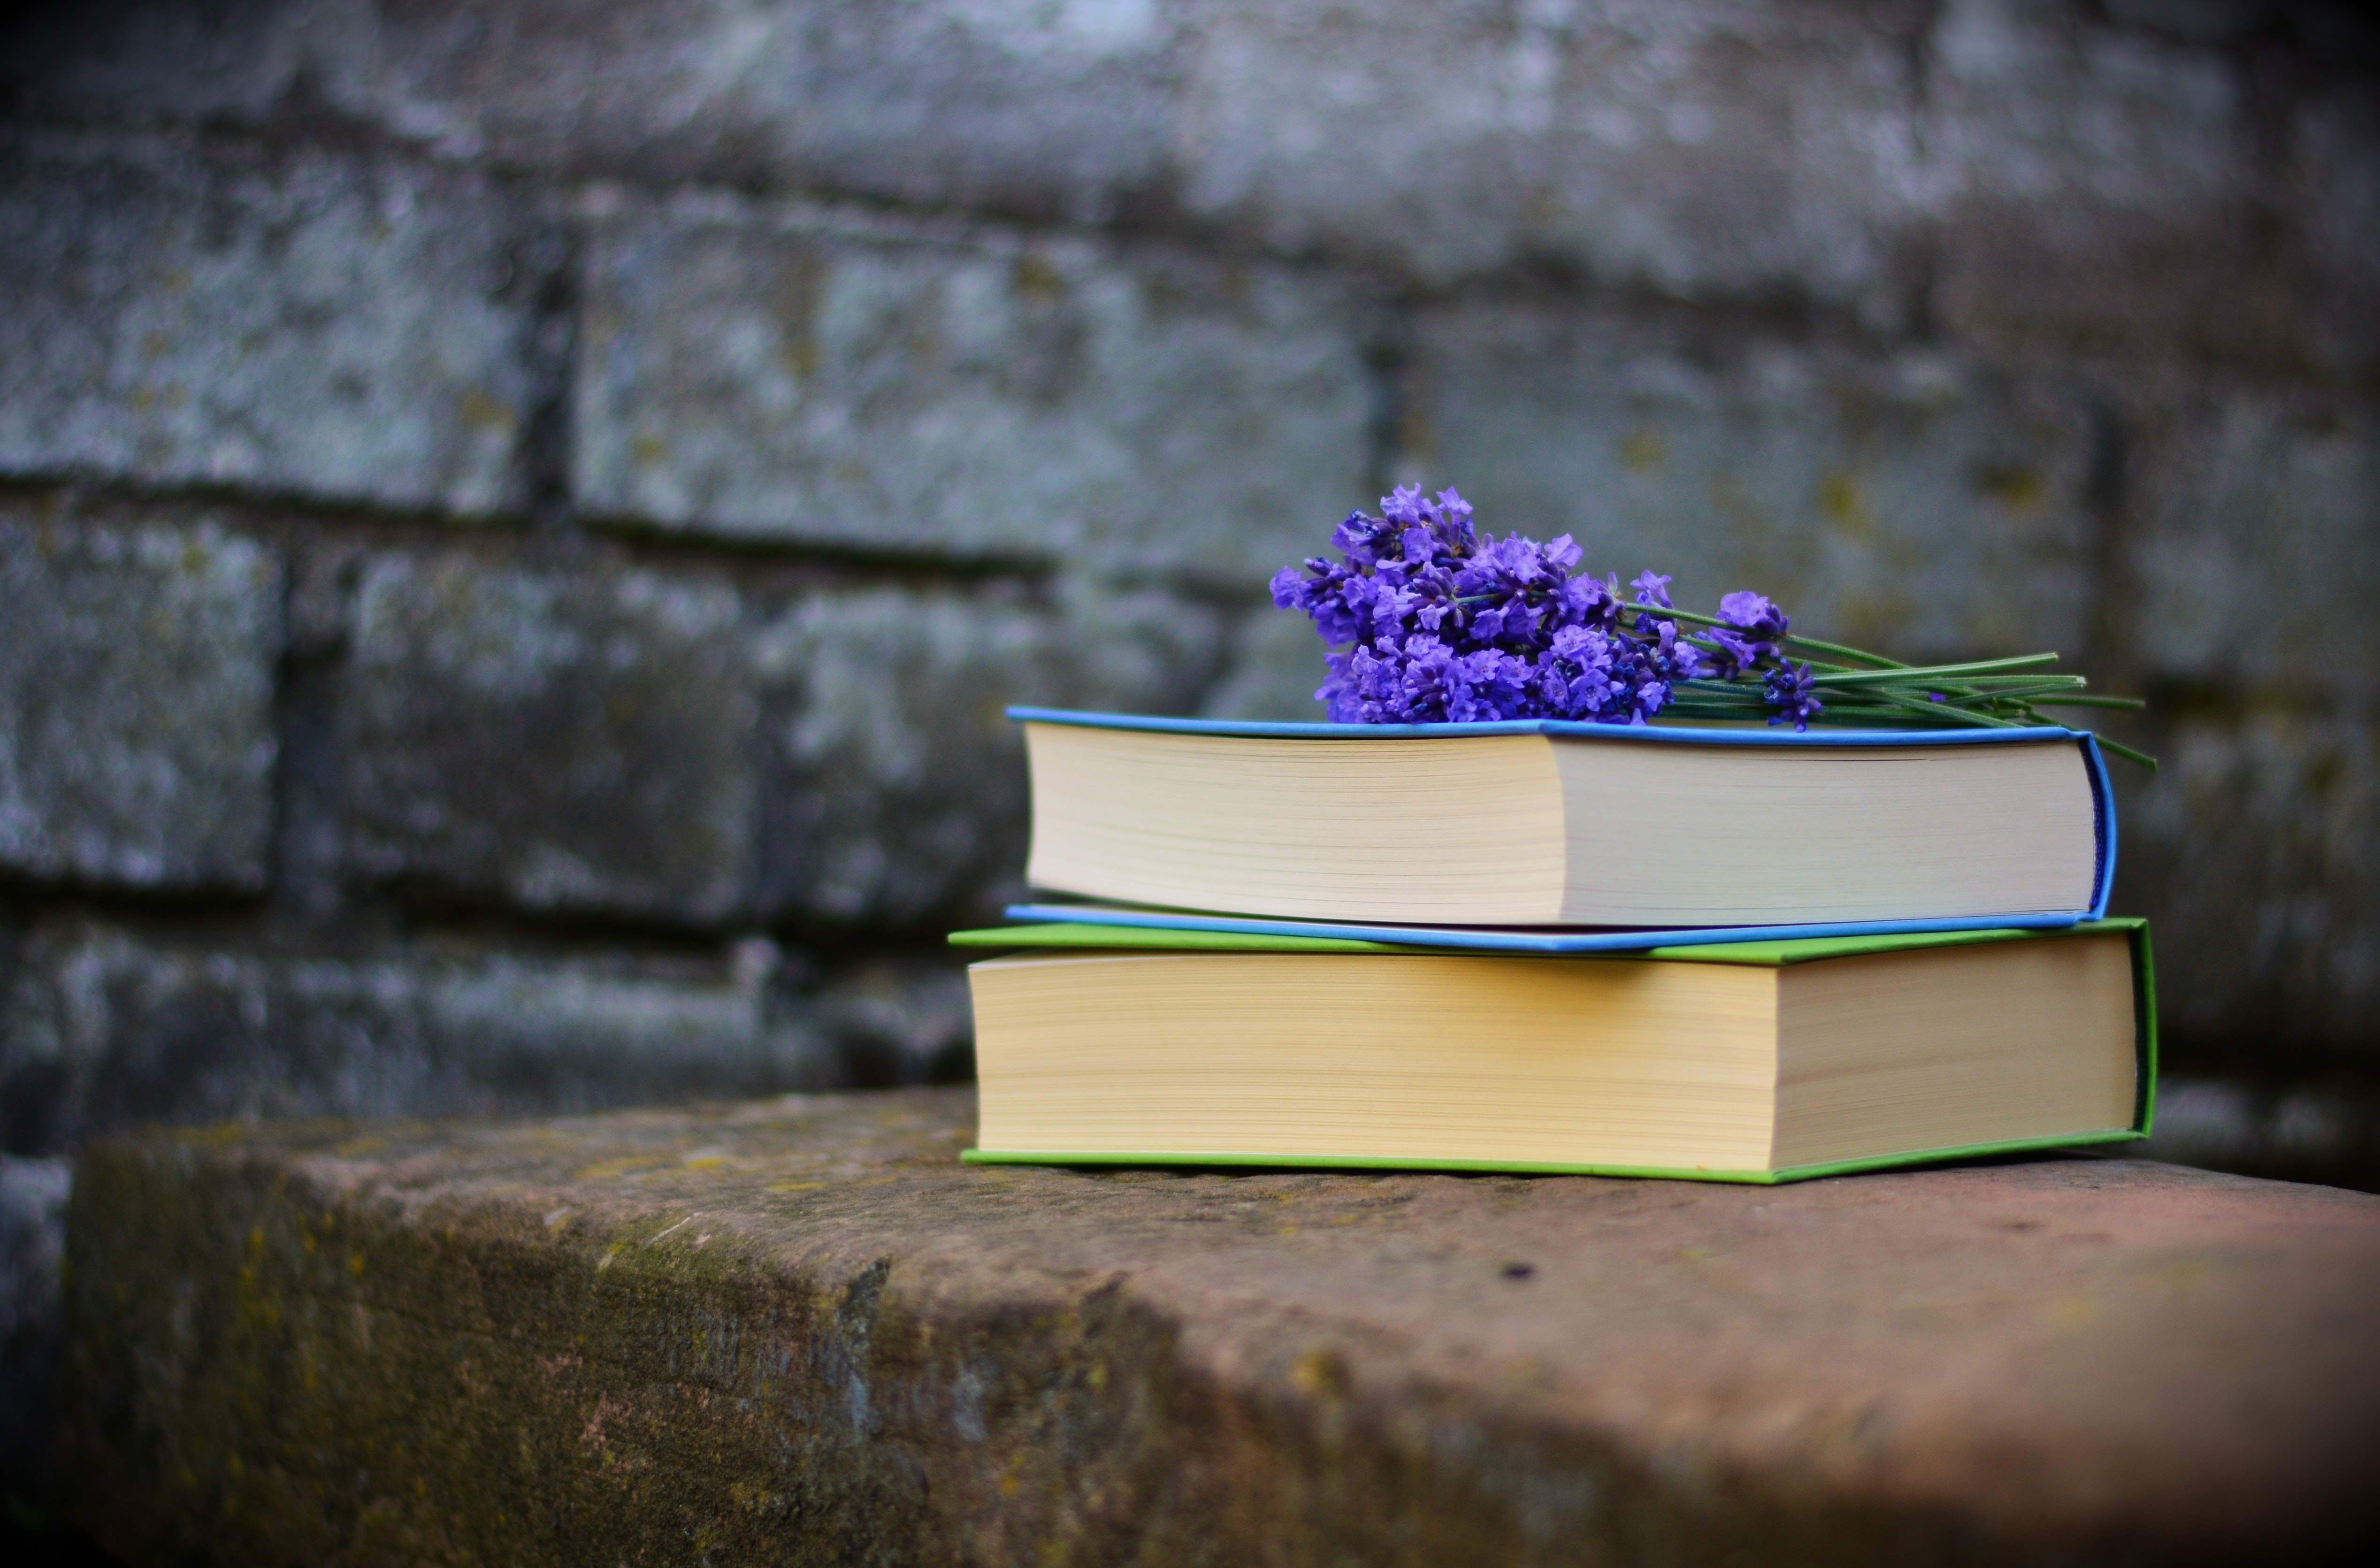 New book recommendations for June